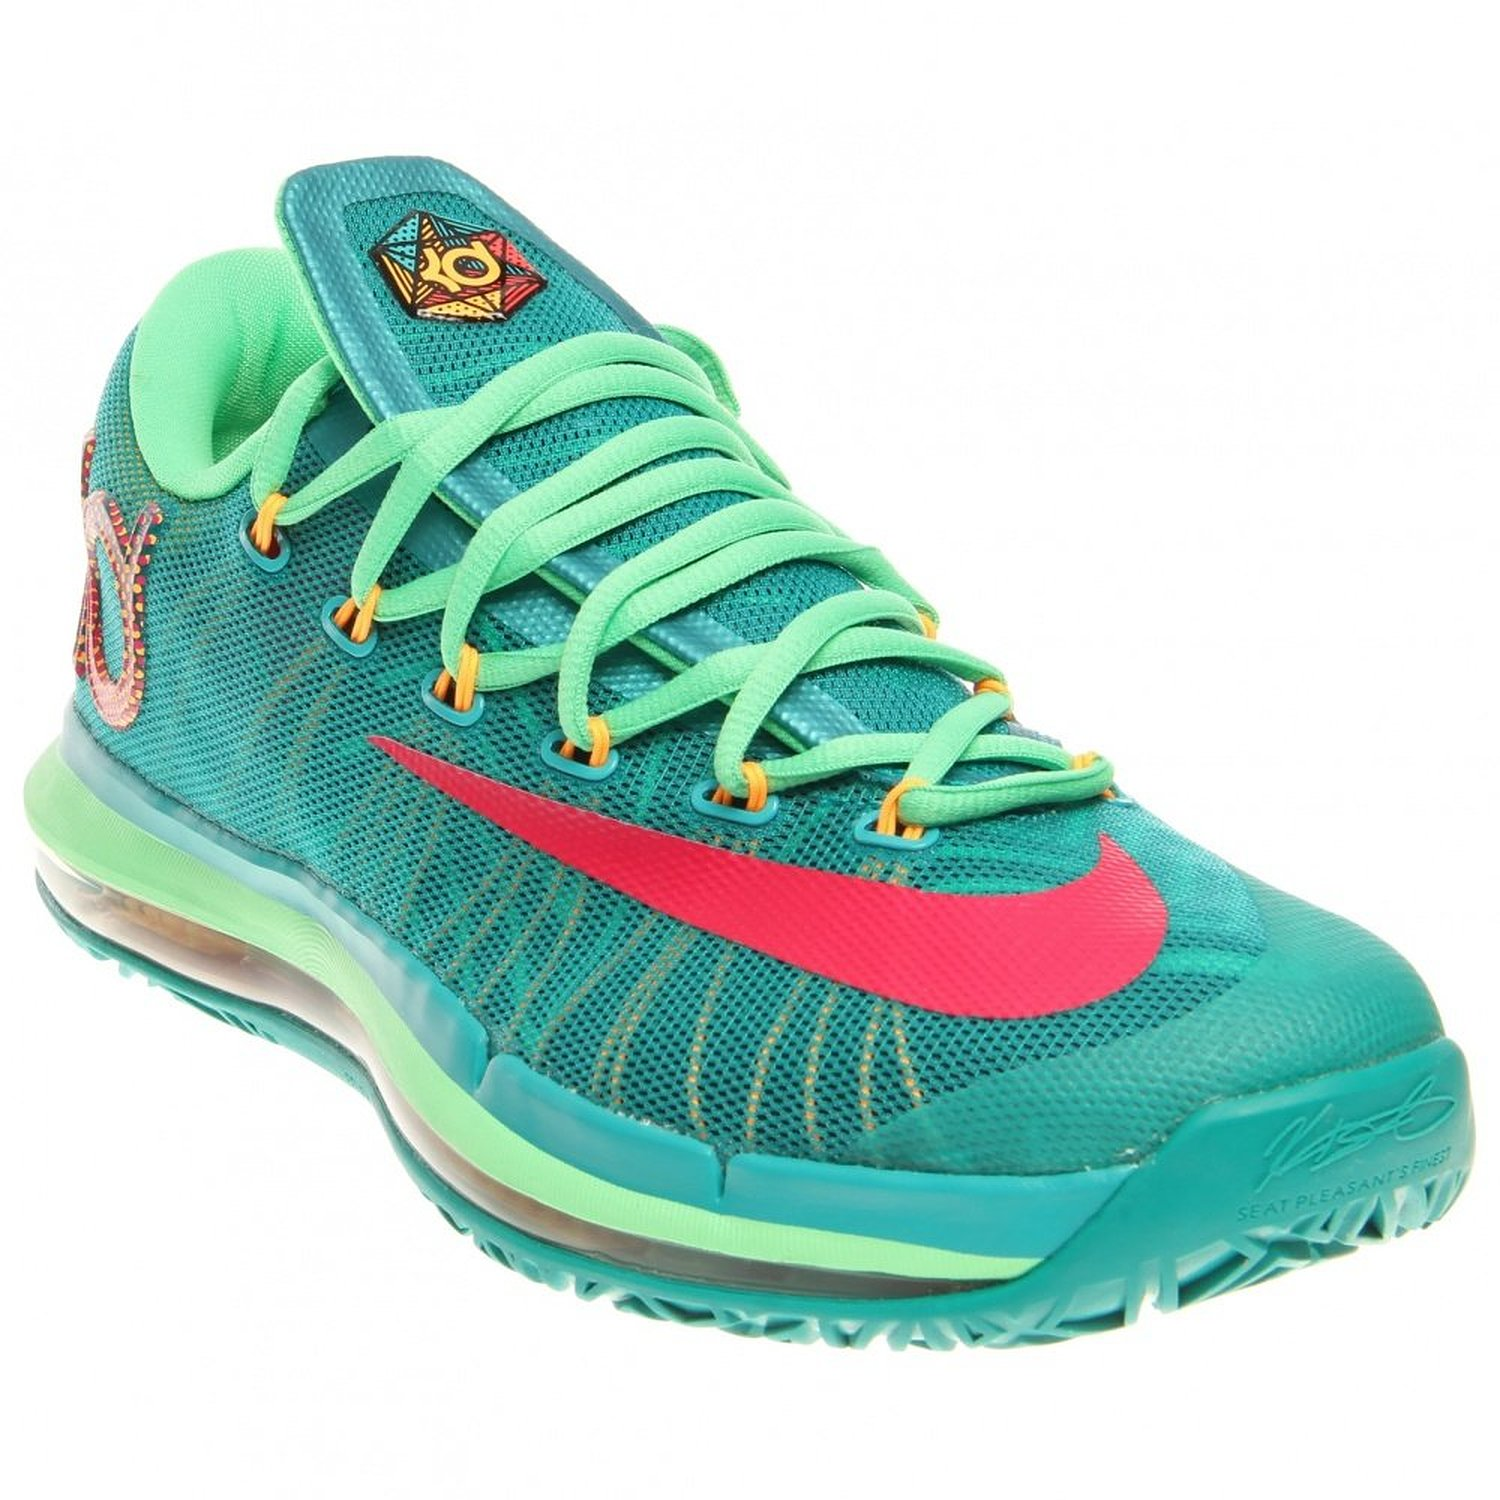 55ae1282eeec Get Quotations · Nike Kd VI Elite Mens Basketball Trainers 642838 Sneakers  Shoes Kevin Durant (uk 8.5 us